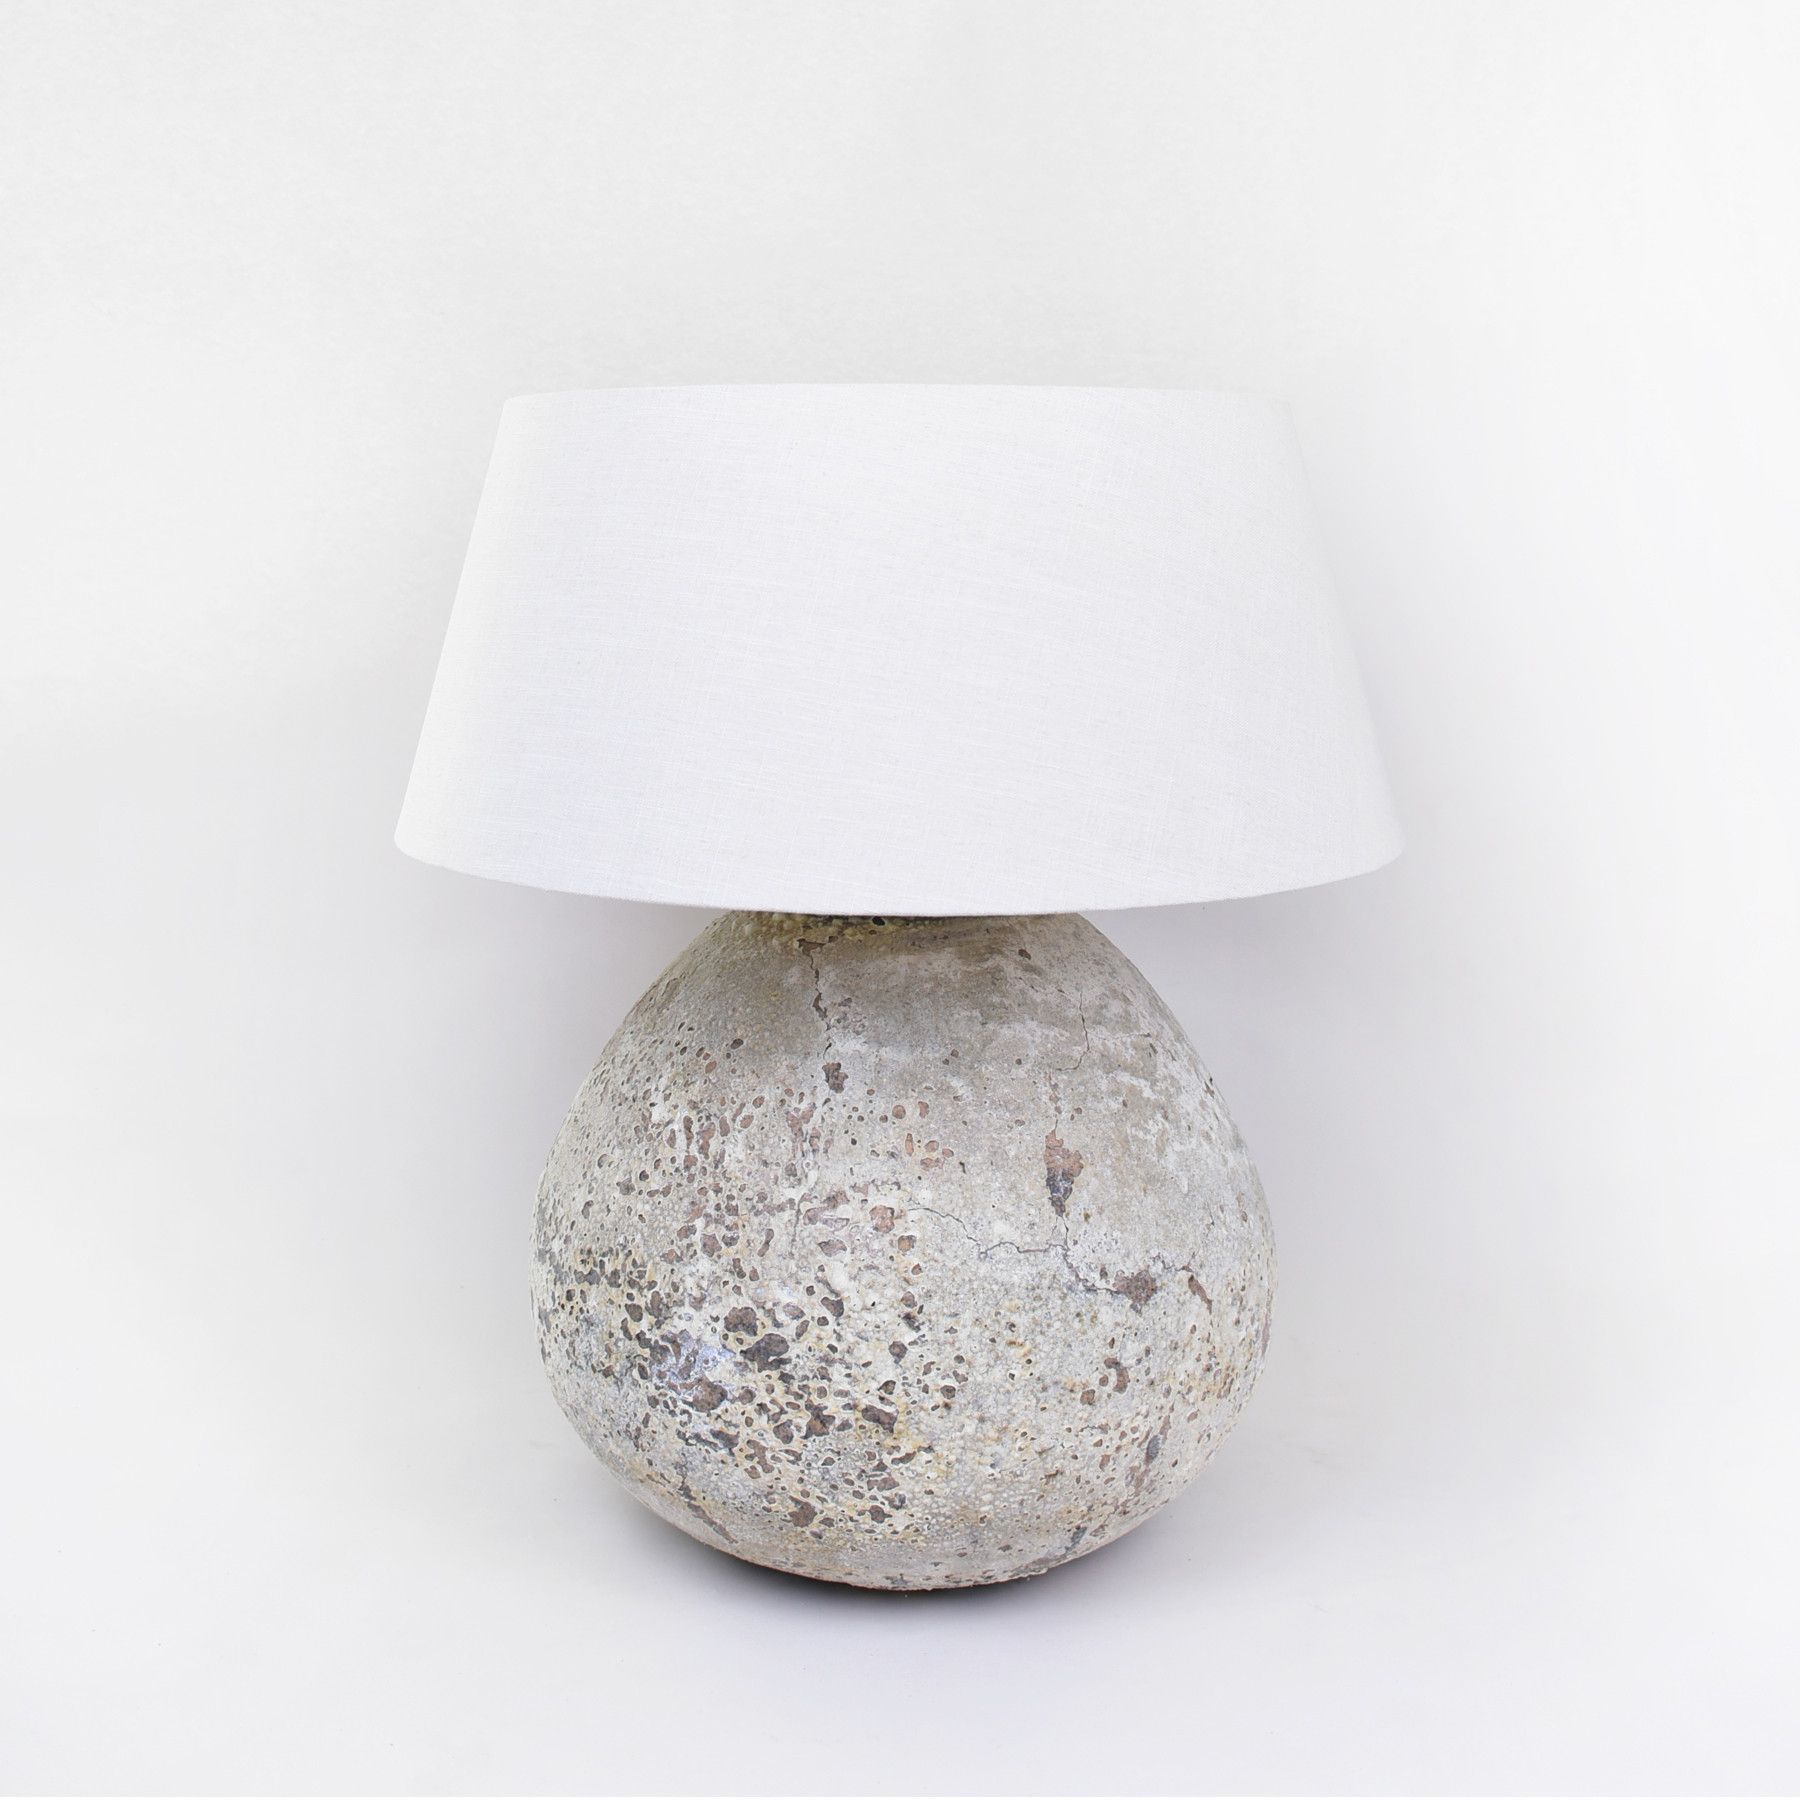 A Personal Touch Travelshopa Ceramic Lamp Base Lamp Bases Handmade Lamps